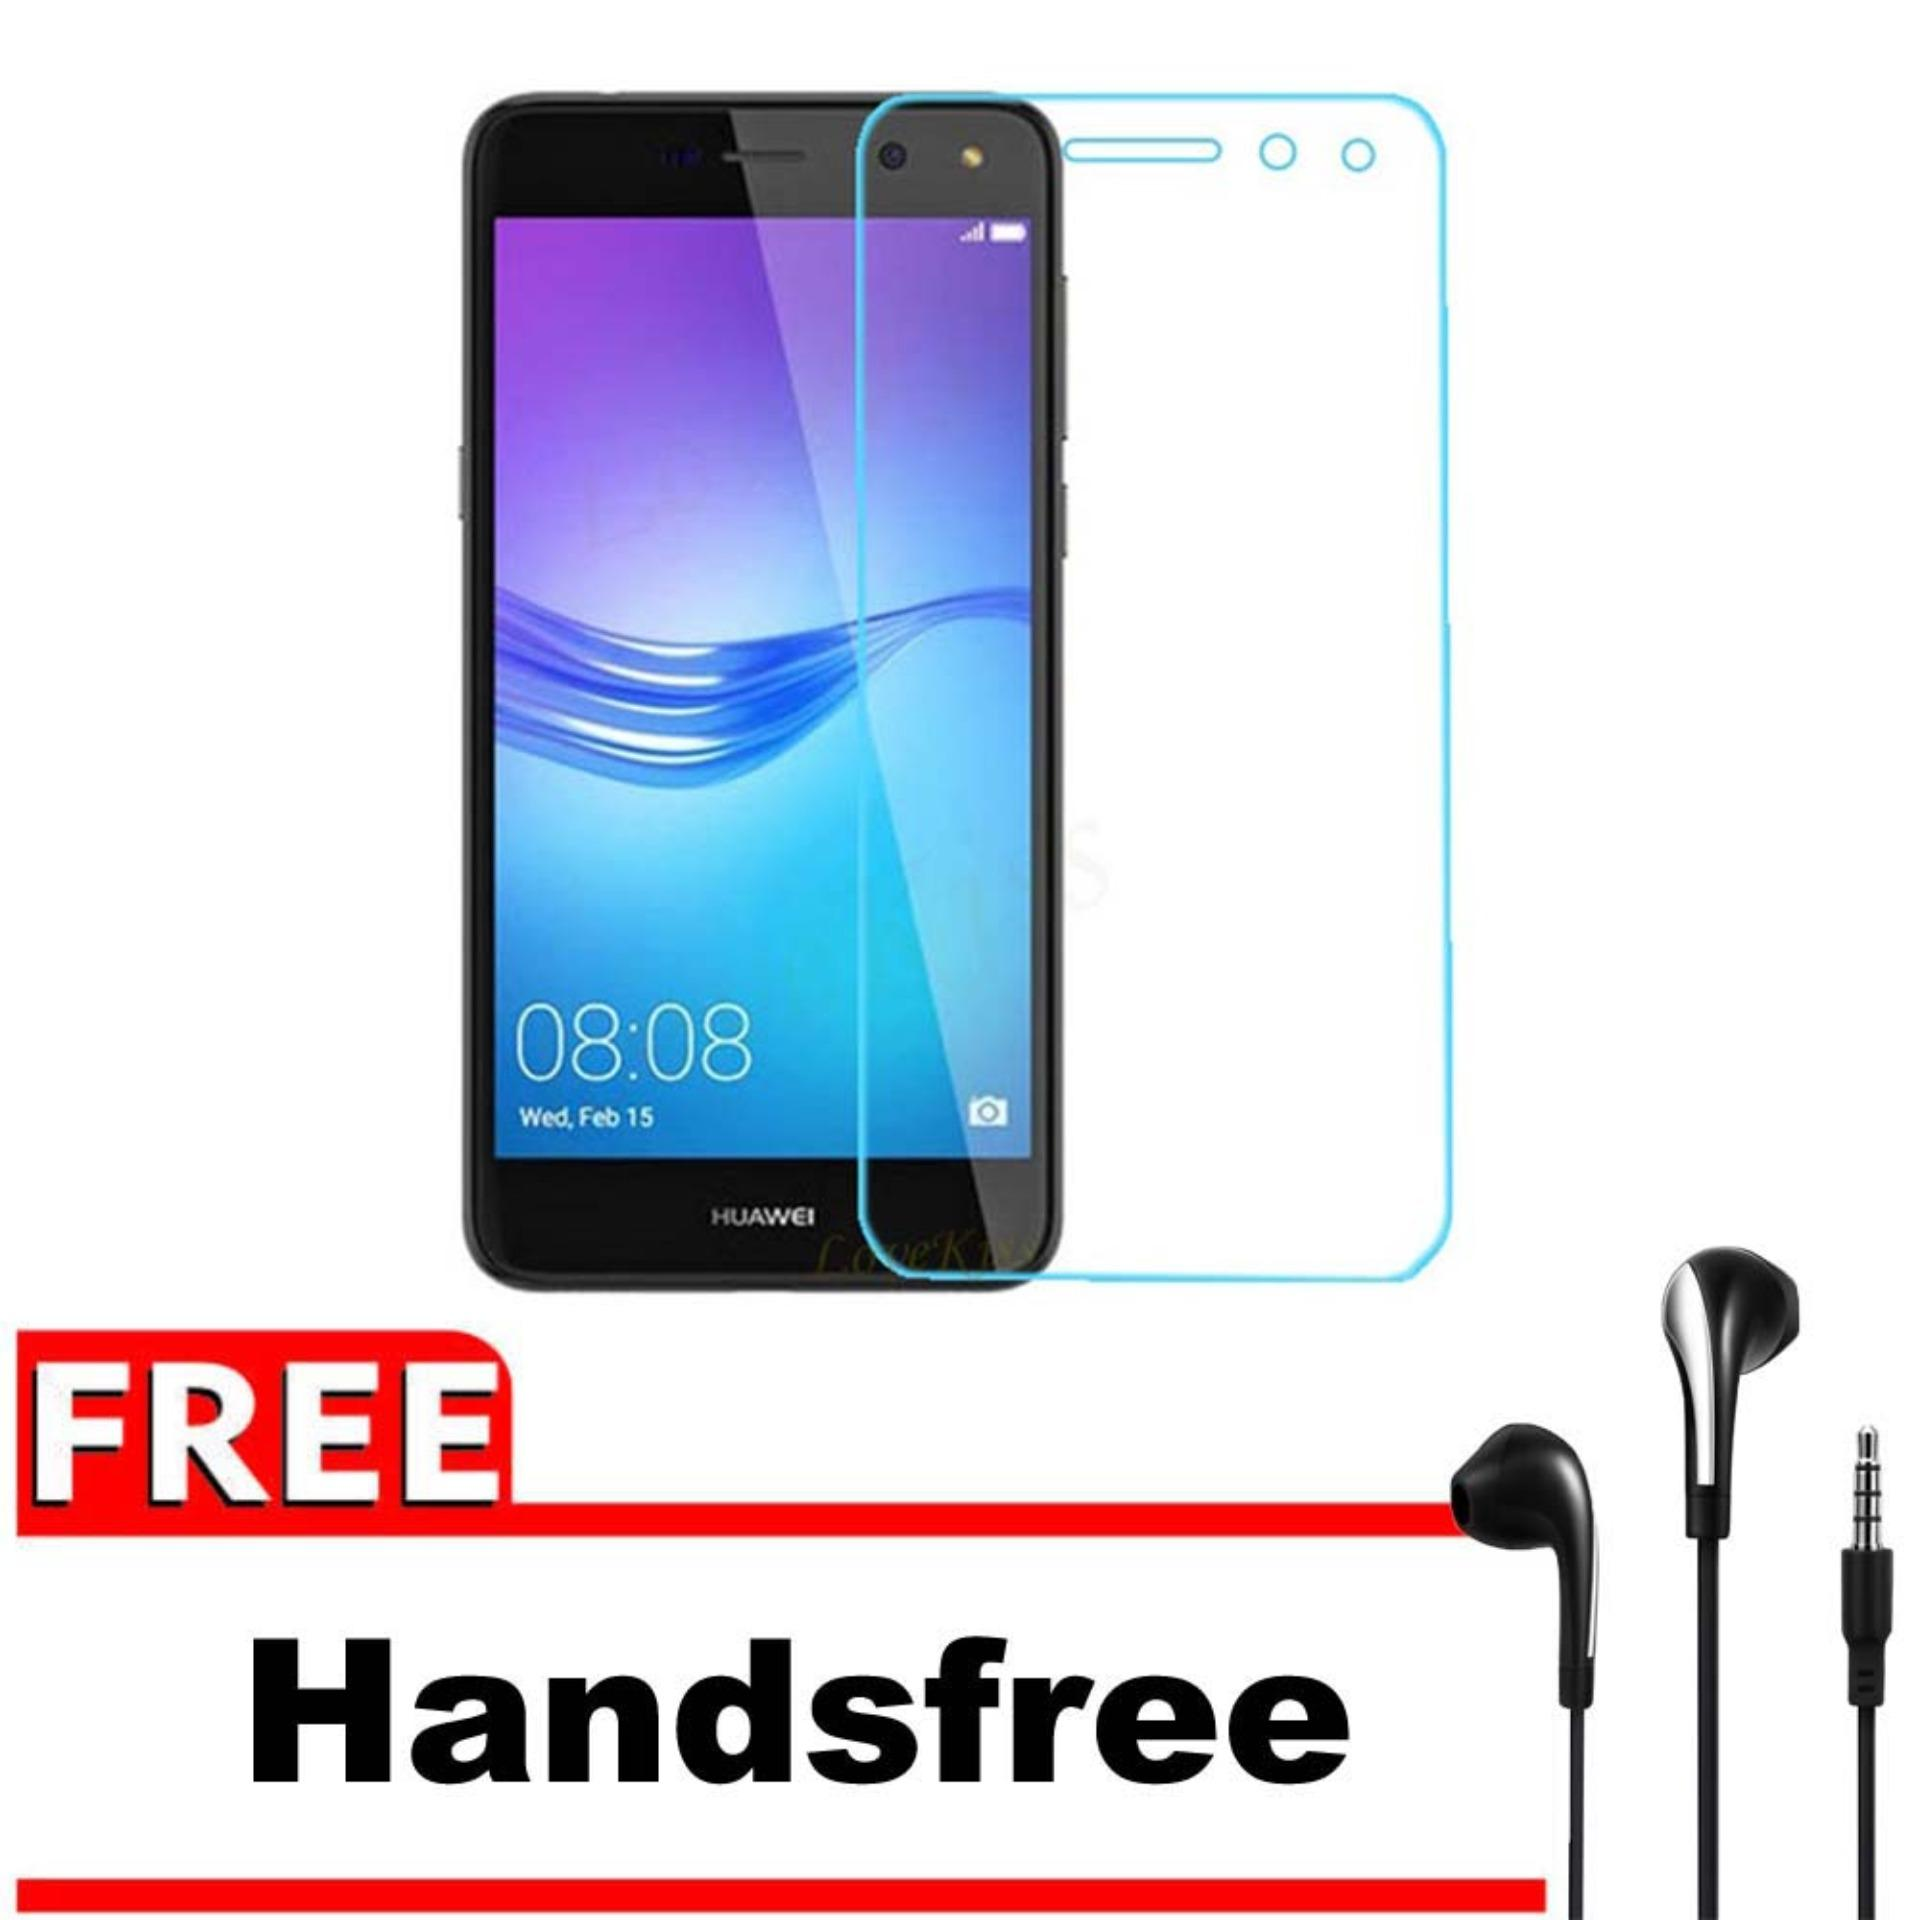 Tempered Glass 9H Screen Protector 0.32mm + Gratis Free Handsfree Earphone Headset .